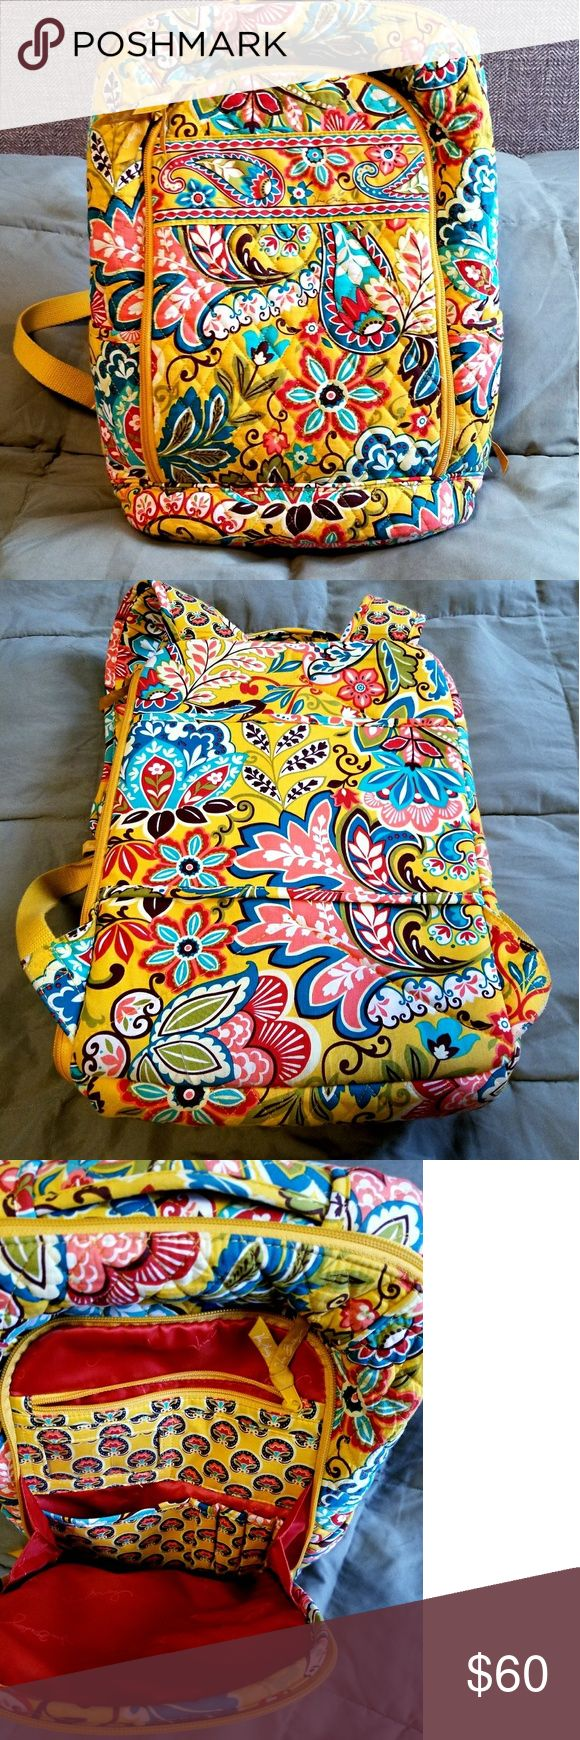 """Yellow Vera Bradley backpack with laptop pocket. Like new yellow Vera Bradley backpack with laptop pocket. Adjustable straps. Body is 100 %cotton  Front pocket has built in wallet and zipper pocket for change. 4 pen/pencil pockets and 1 small pouch pocket 5.25"""" 2 side pockets  1 large zip pouch Double sided laptop compartment with a velcro strap. Good for small laptop or notebook.  11""""x 15""""x 6.5"""". Vera Bradley Bags Backpacks"""